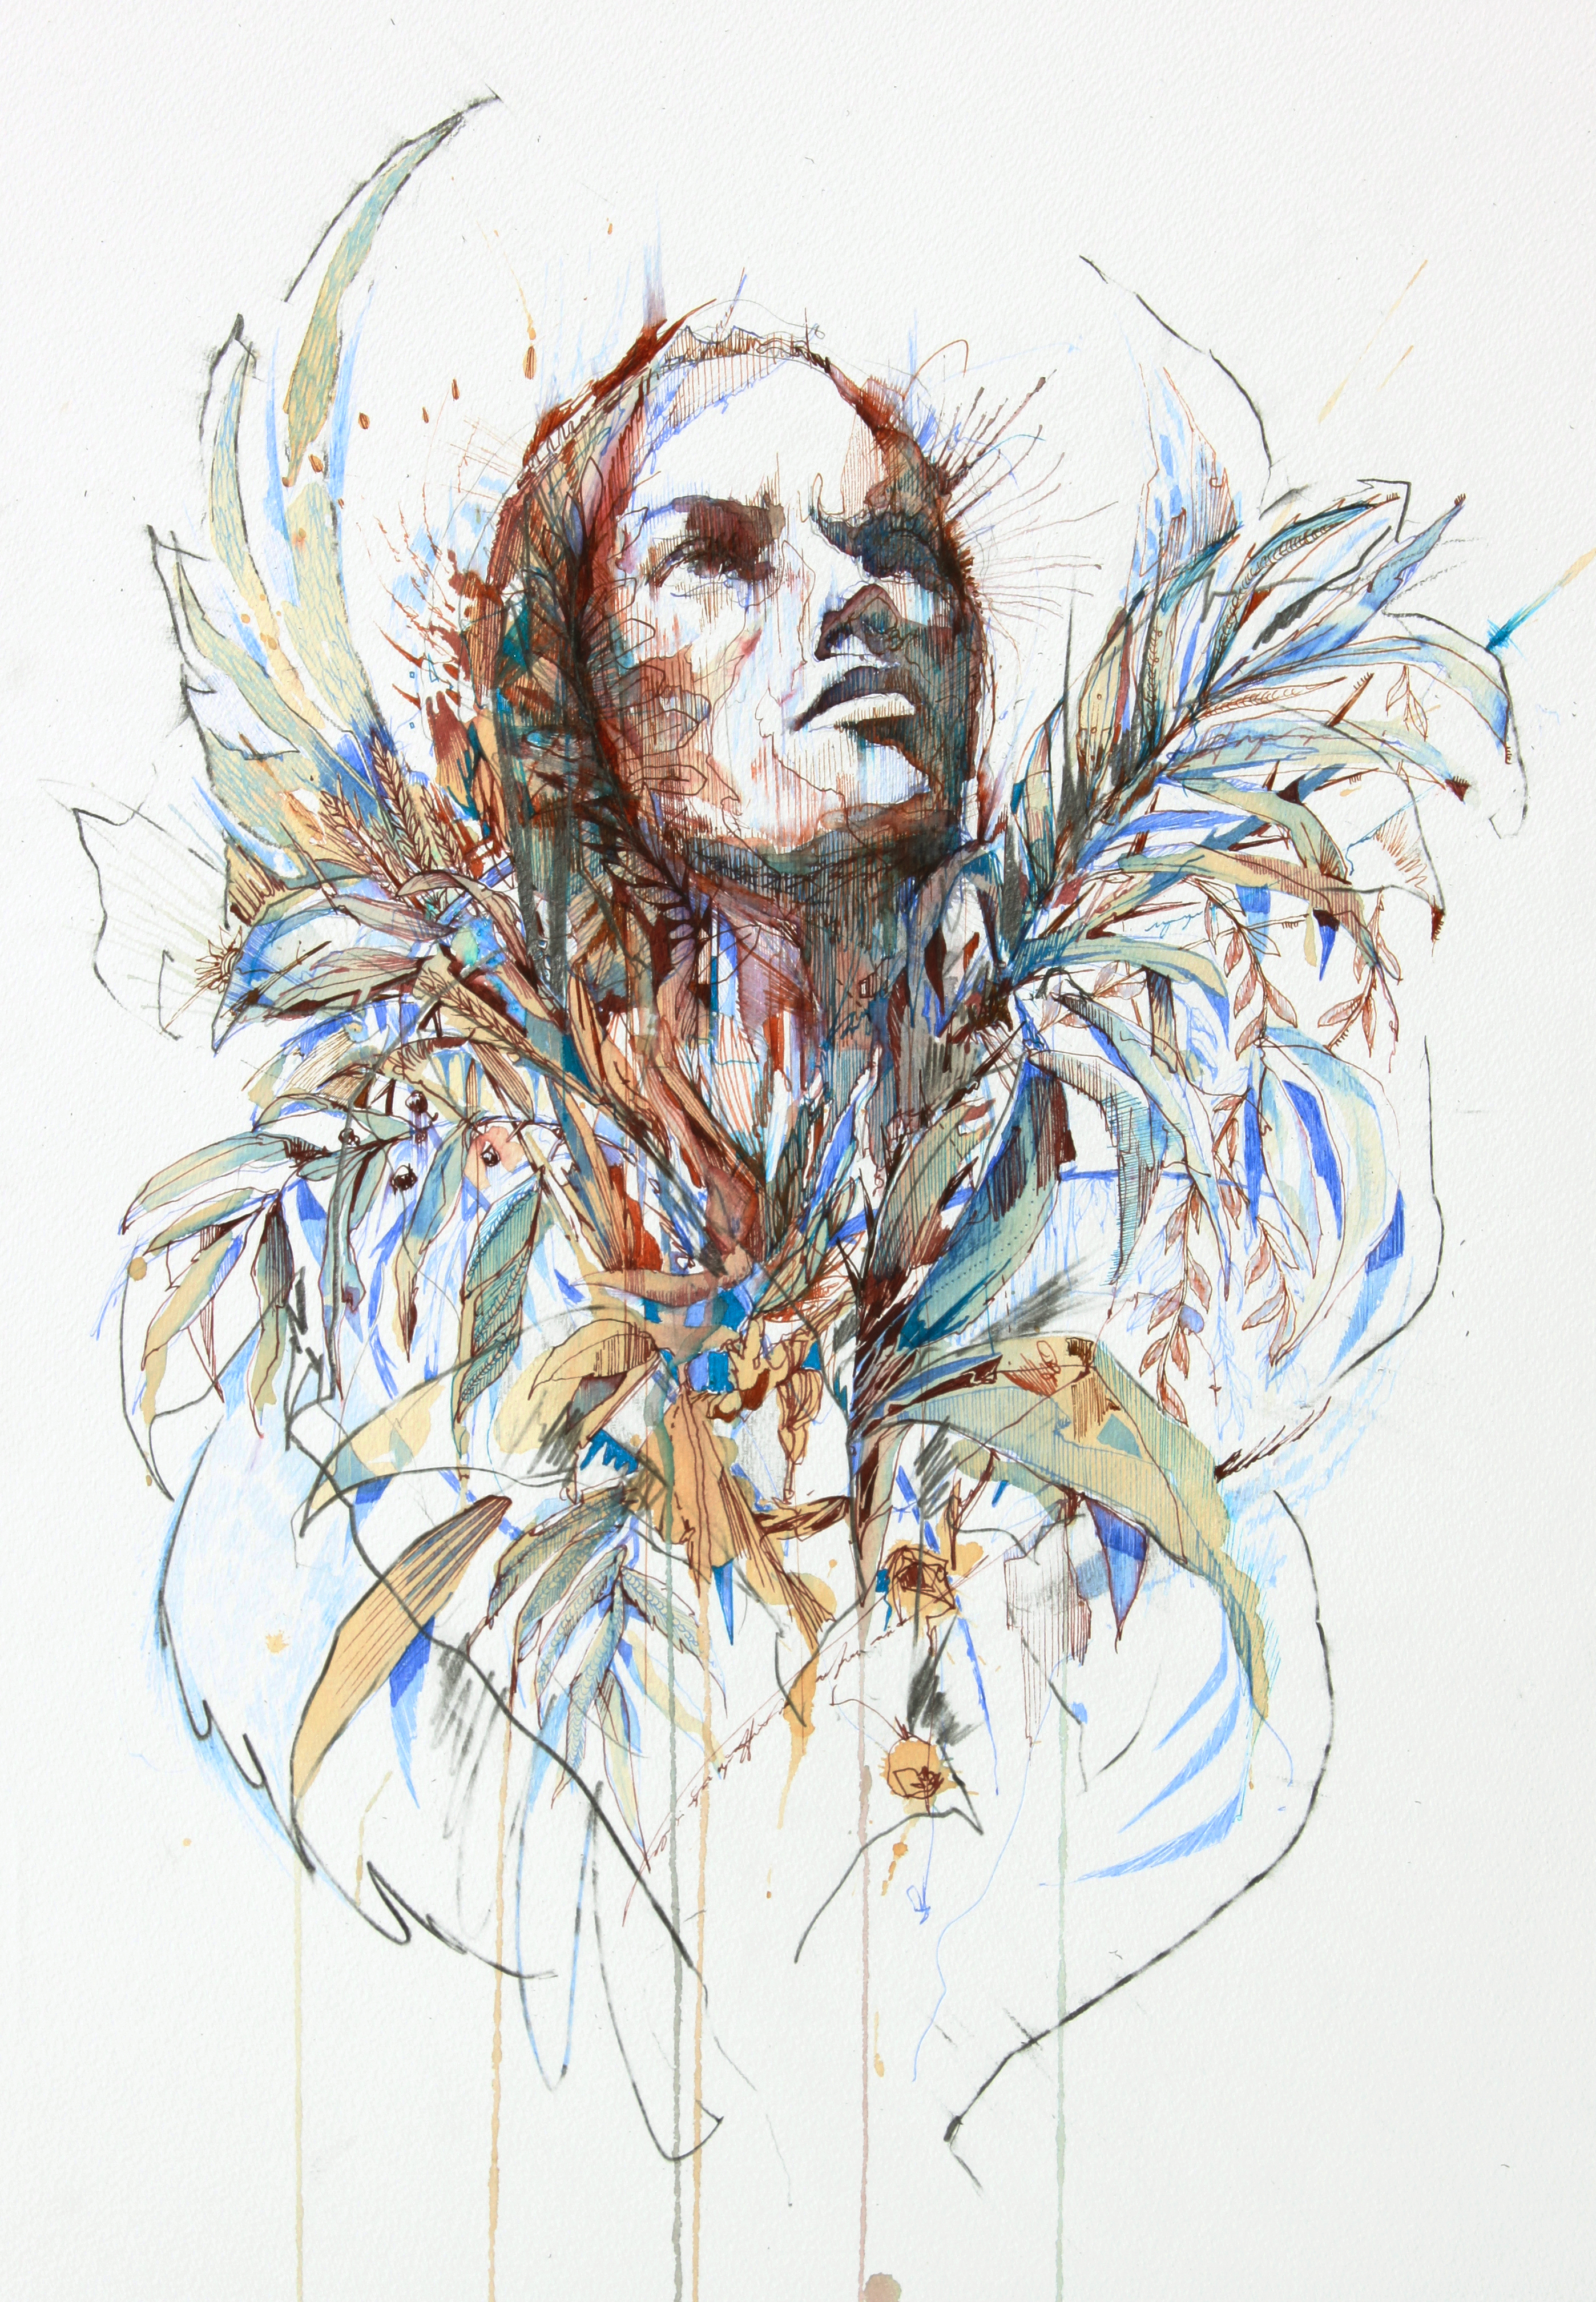 Artwork by Carne Griffiths. Image courtesy the Artist.